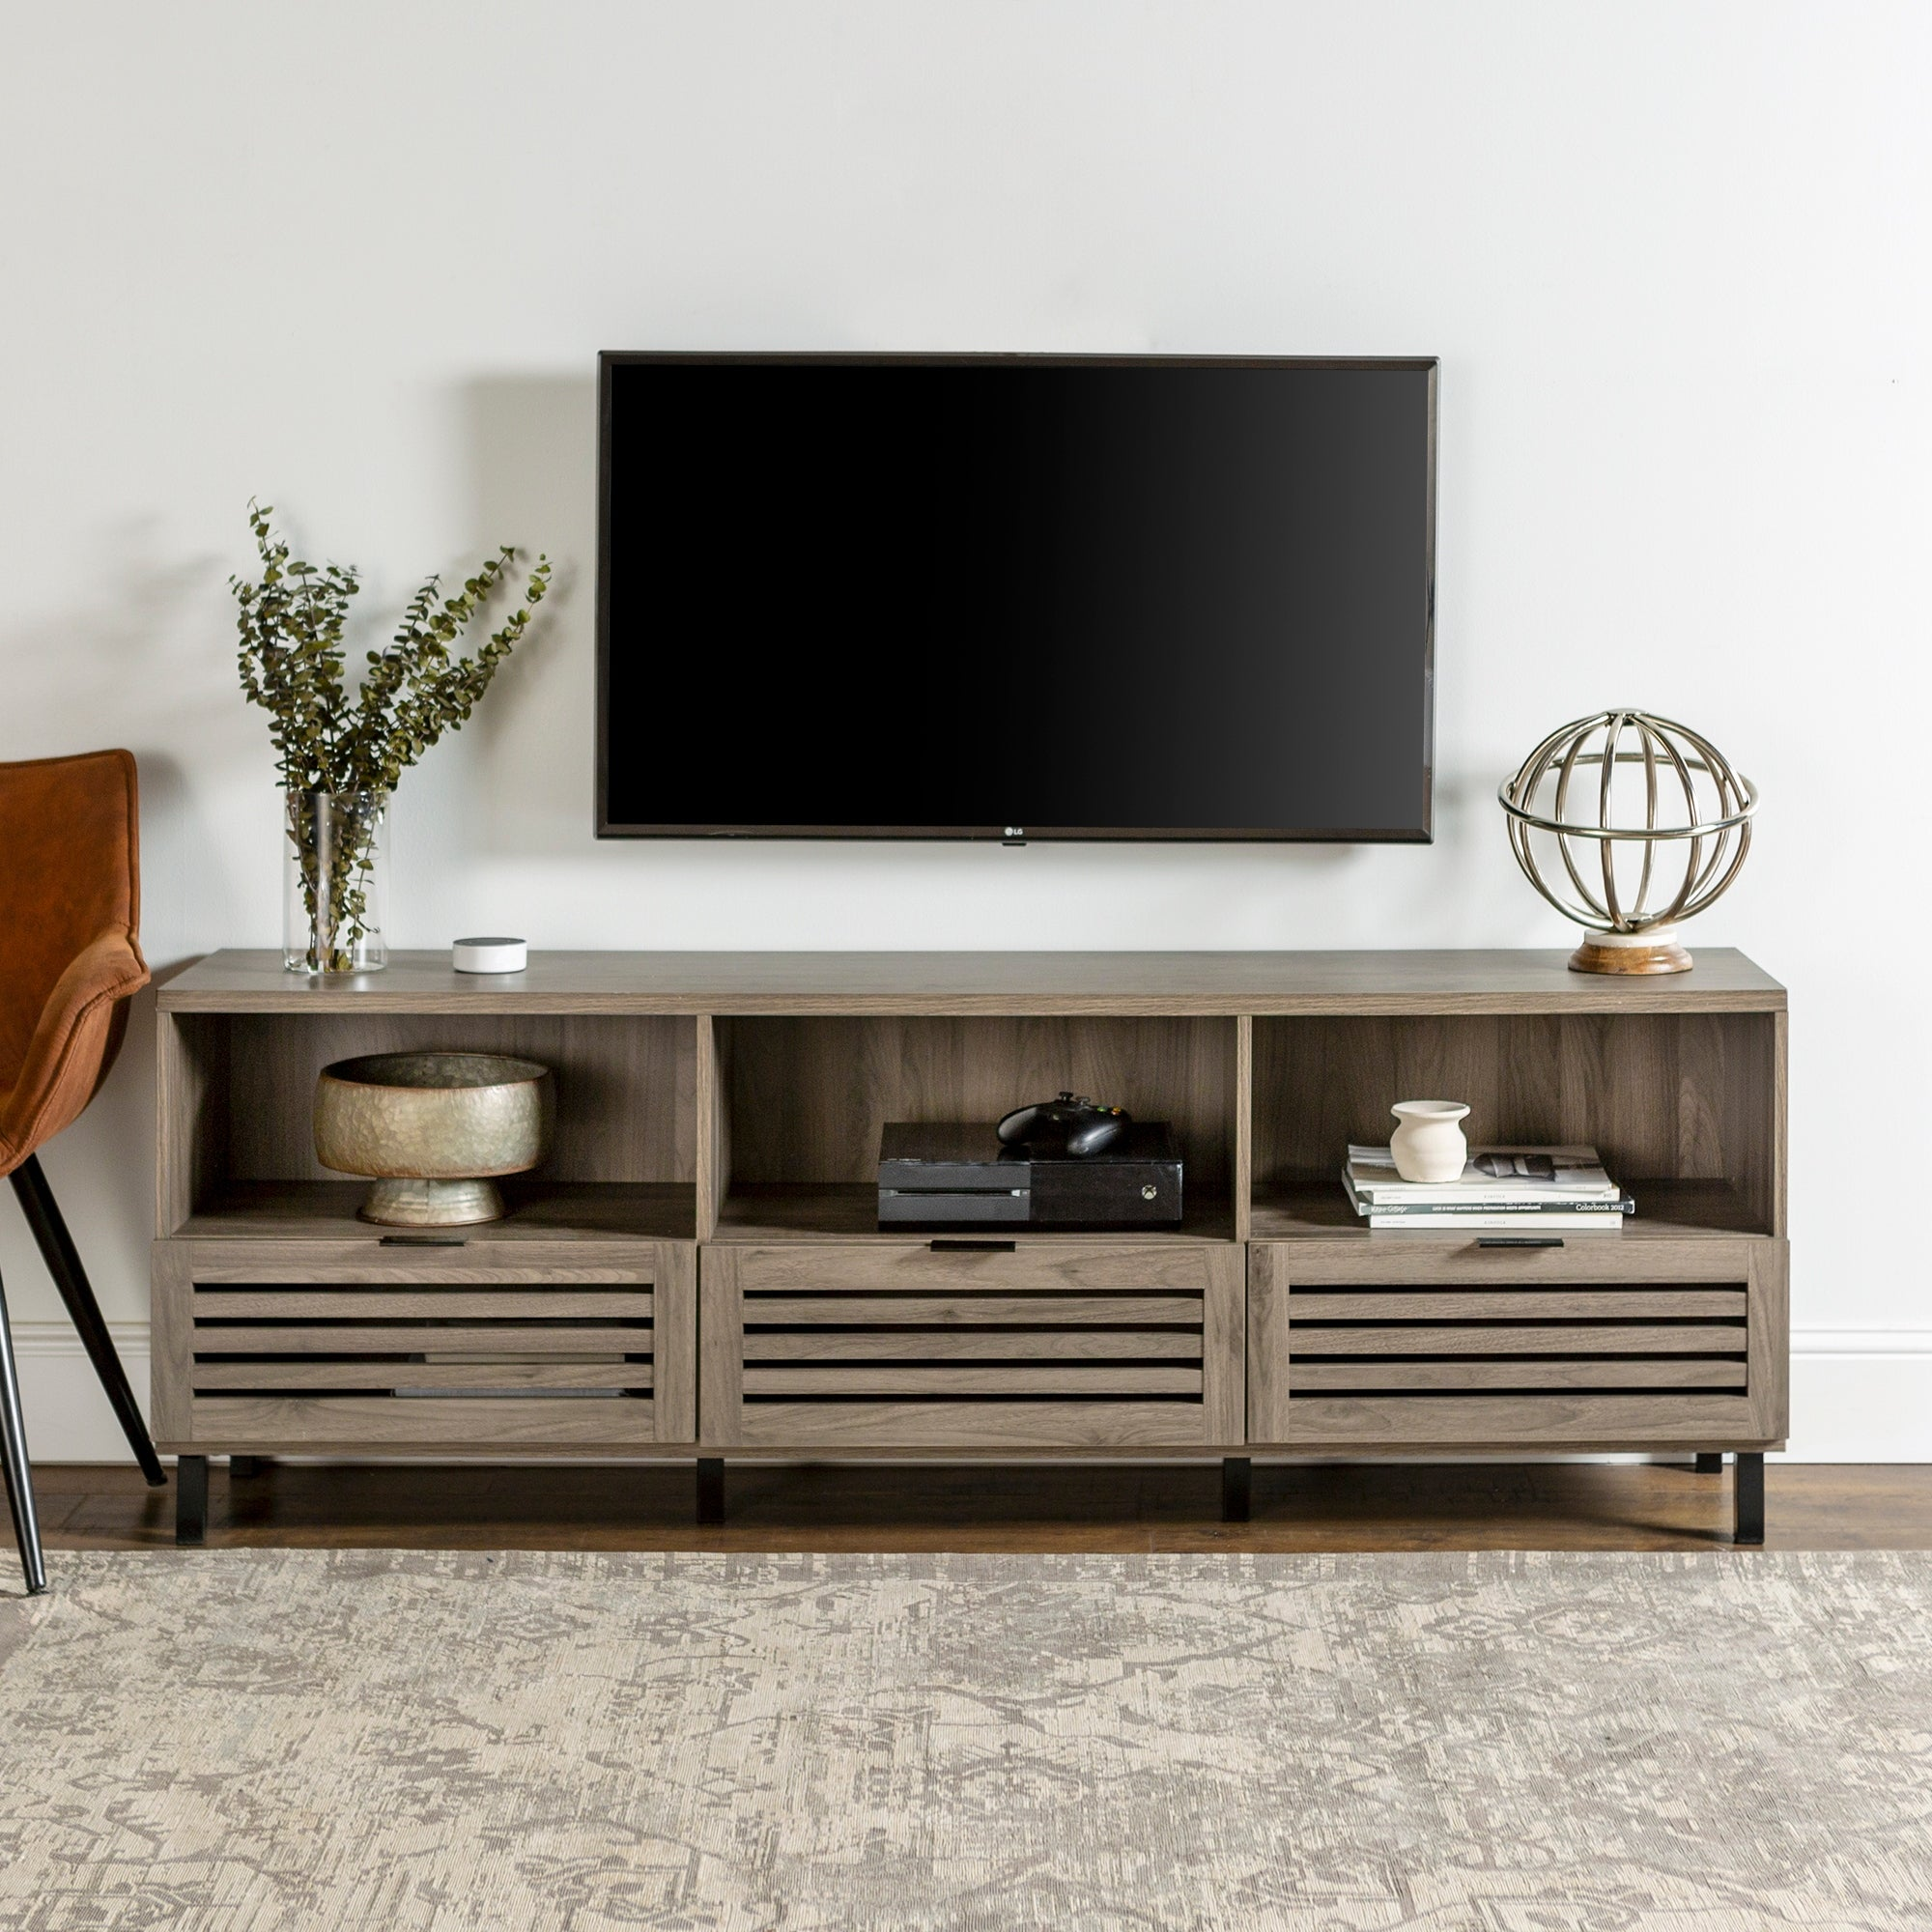 Strick Bolton Hilla 70 Inch Storage Tv Stand Console On Sale Overstock 22848764